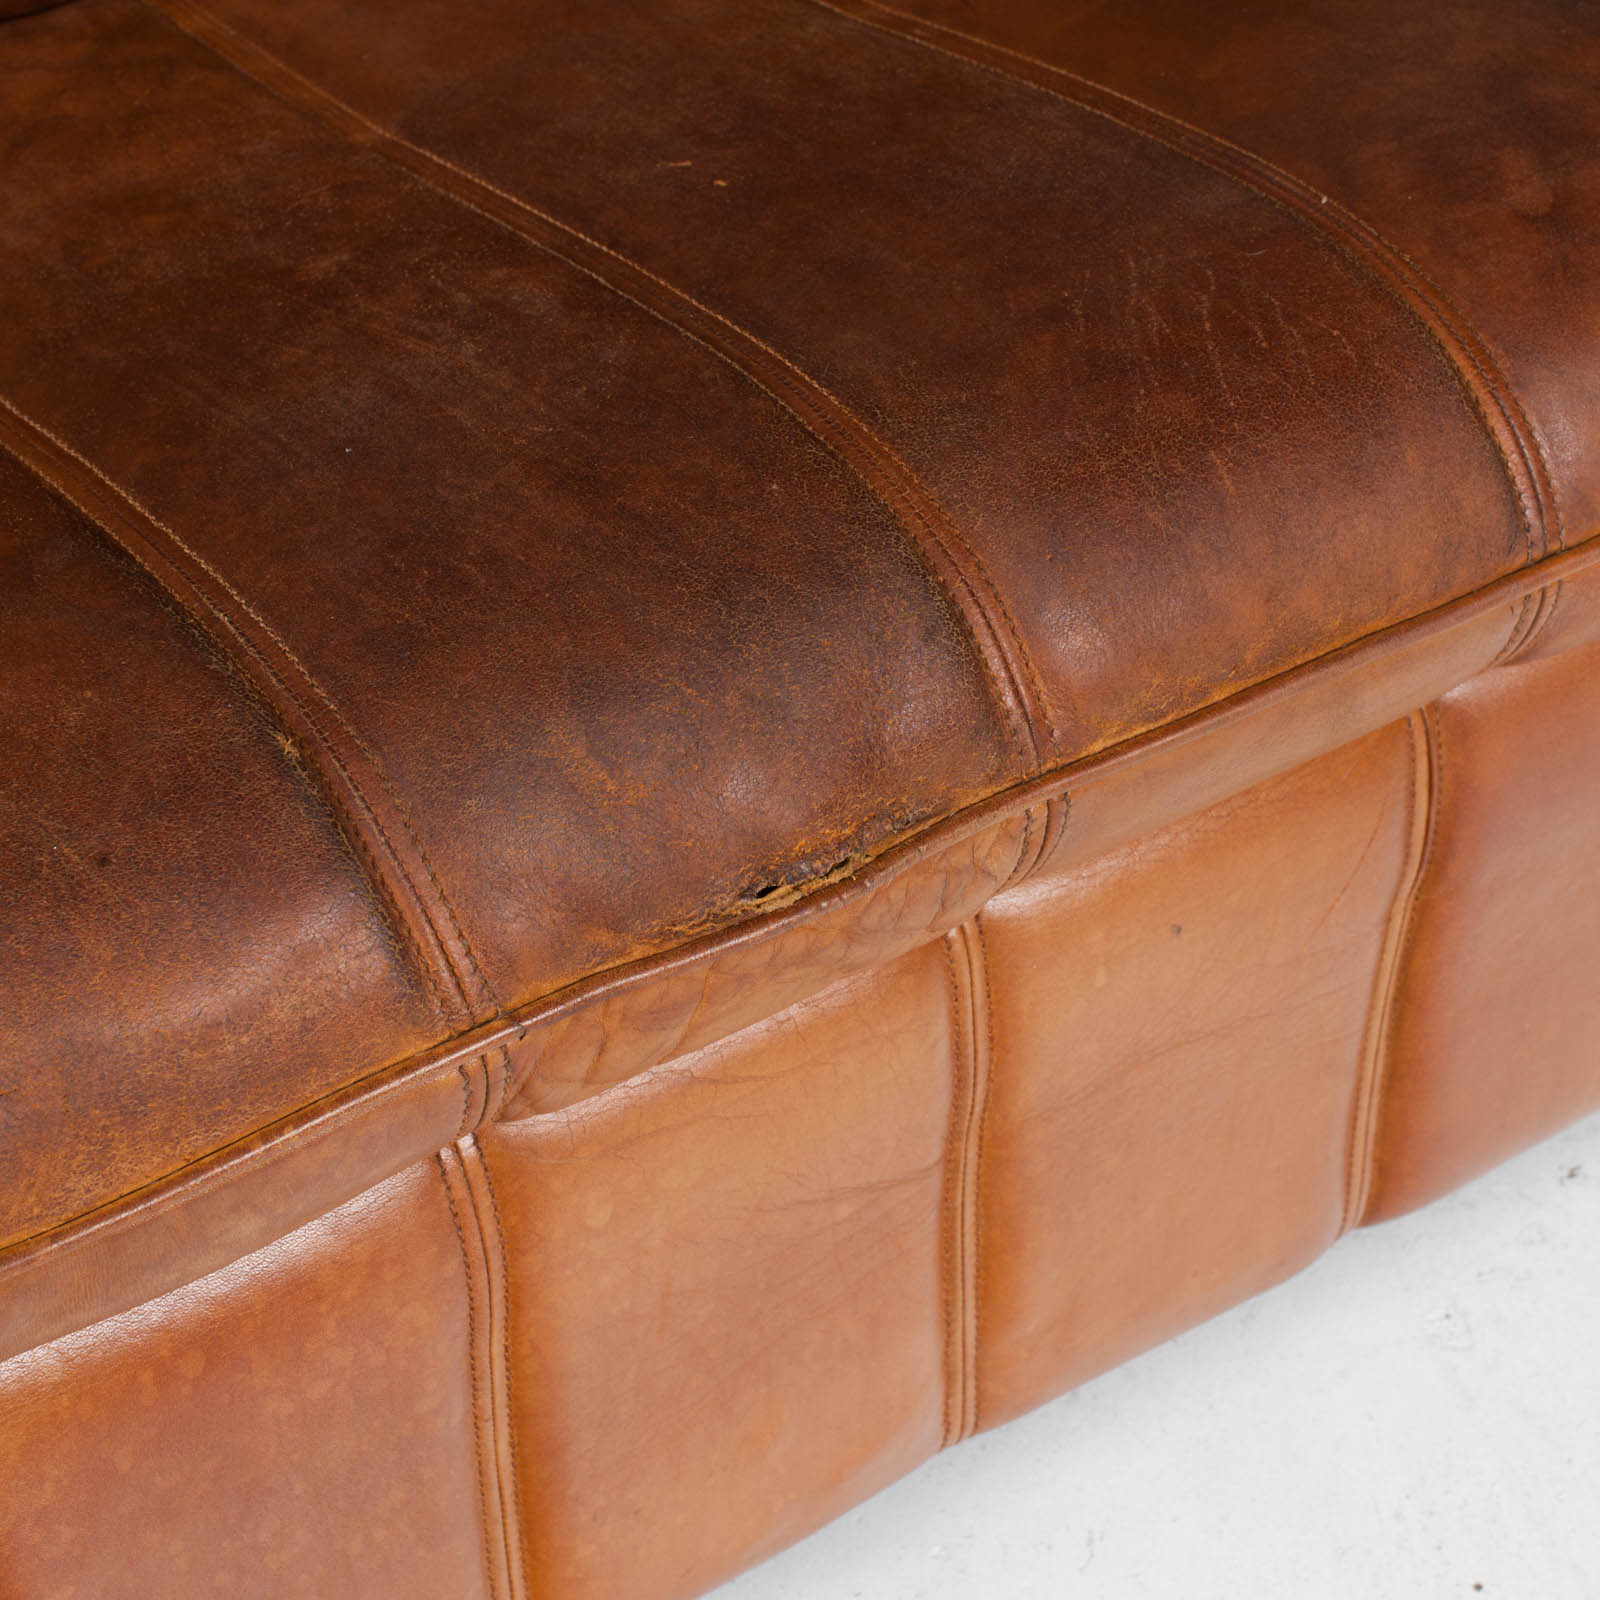 2 Seat Sofa By De Sede In Tan Leather 1970s Switzerland 08